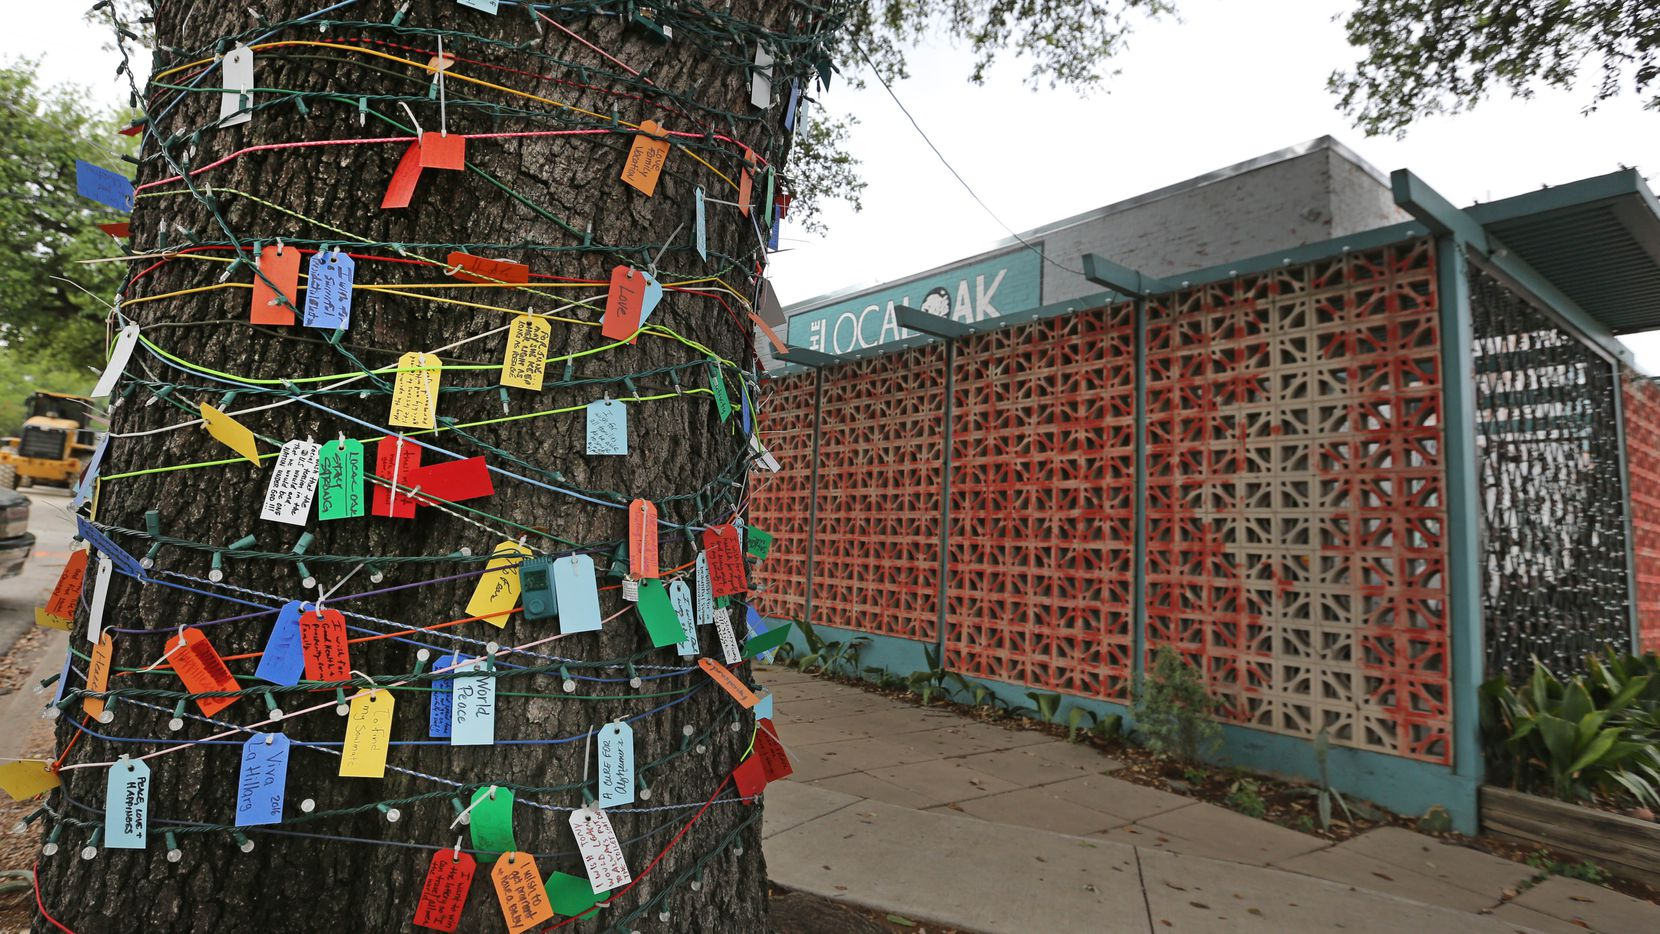 A tree covered with cards with wishes written on them is seen outside the Local Oak restaurant and bar near the Bishop Arts stop for the Oak Cliff streetcar in April 2017. Construction for the nearby trolley along with the COVID-19 pandemic have hurt the restaurant's business in recent years.